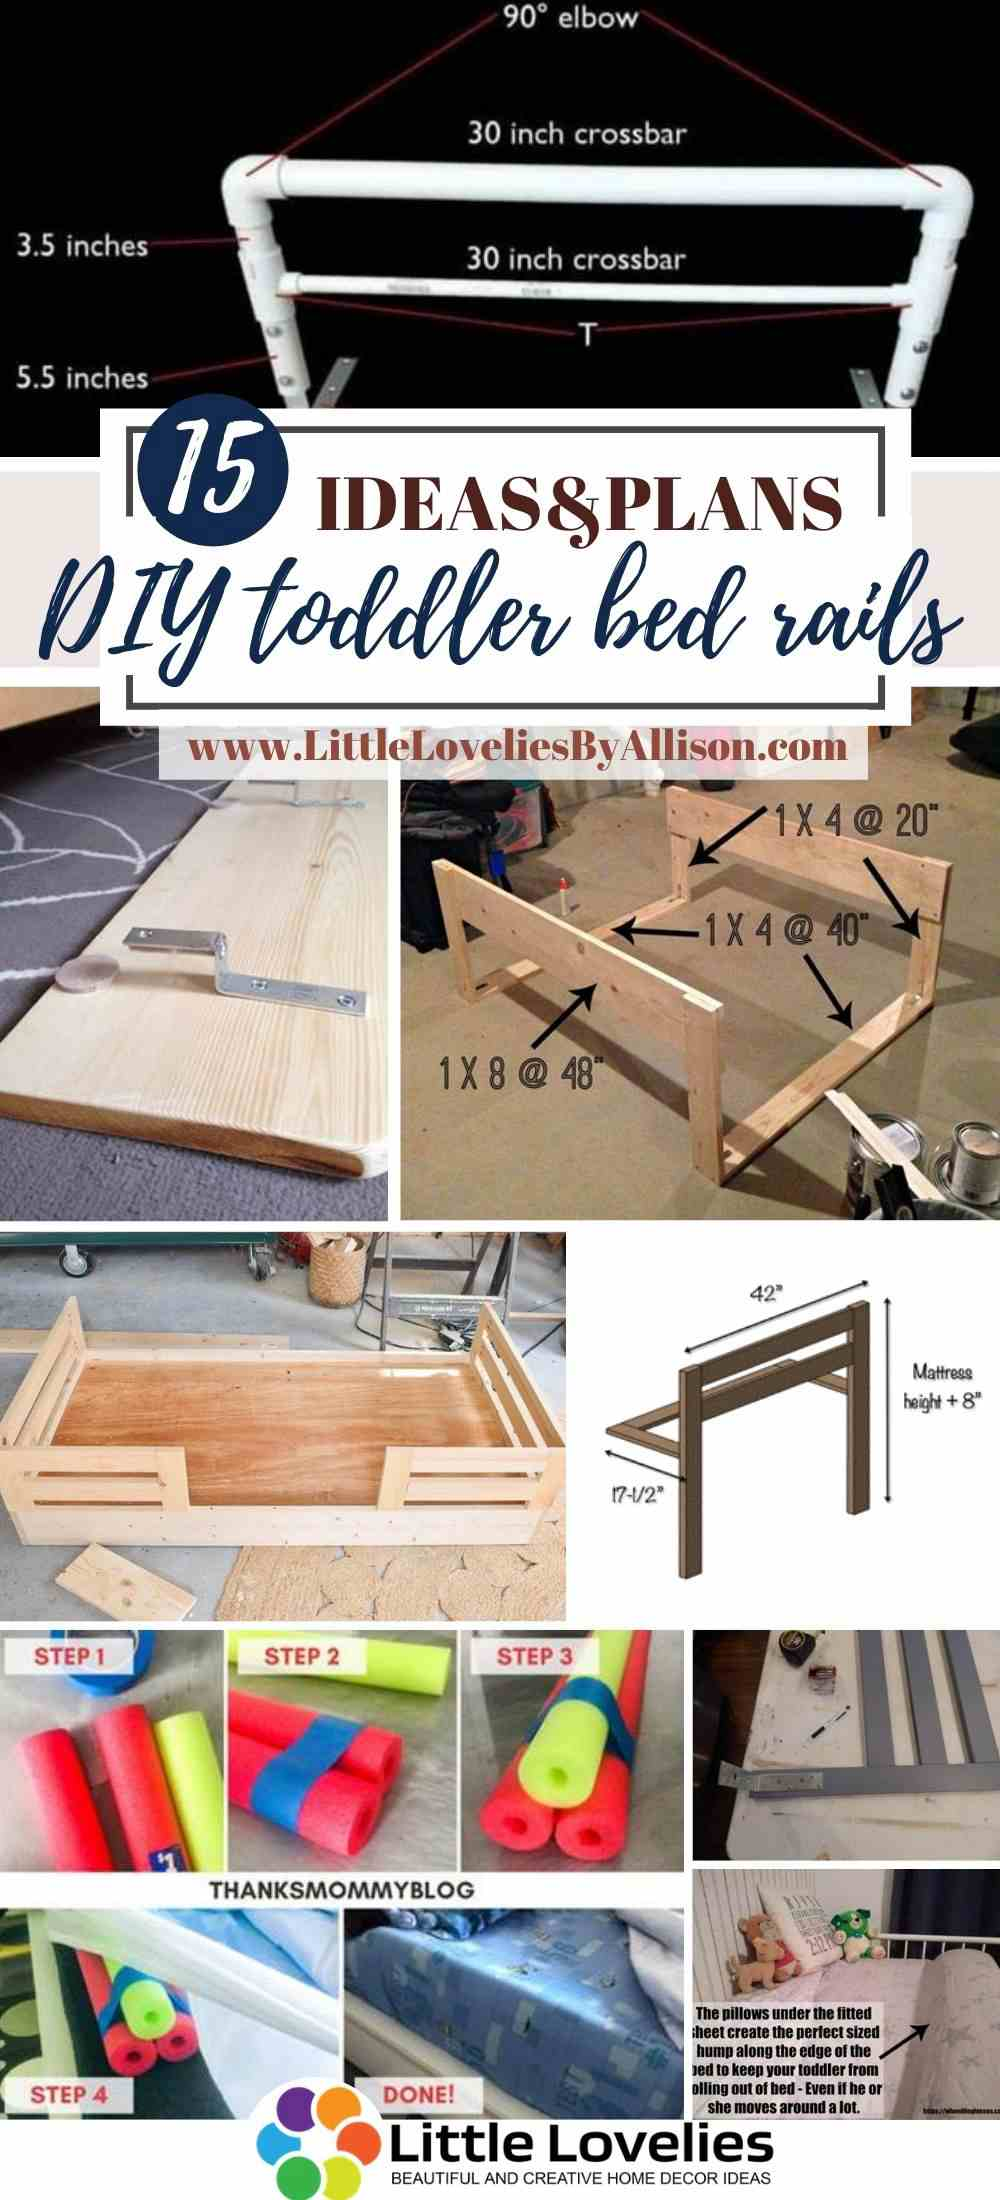 15 Diy Toddler Bed Rail Plans How To Build Toddler Bed Rails